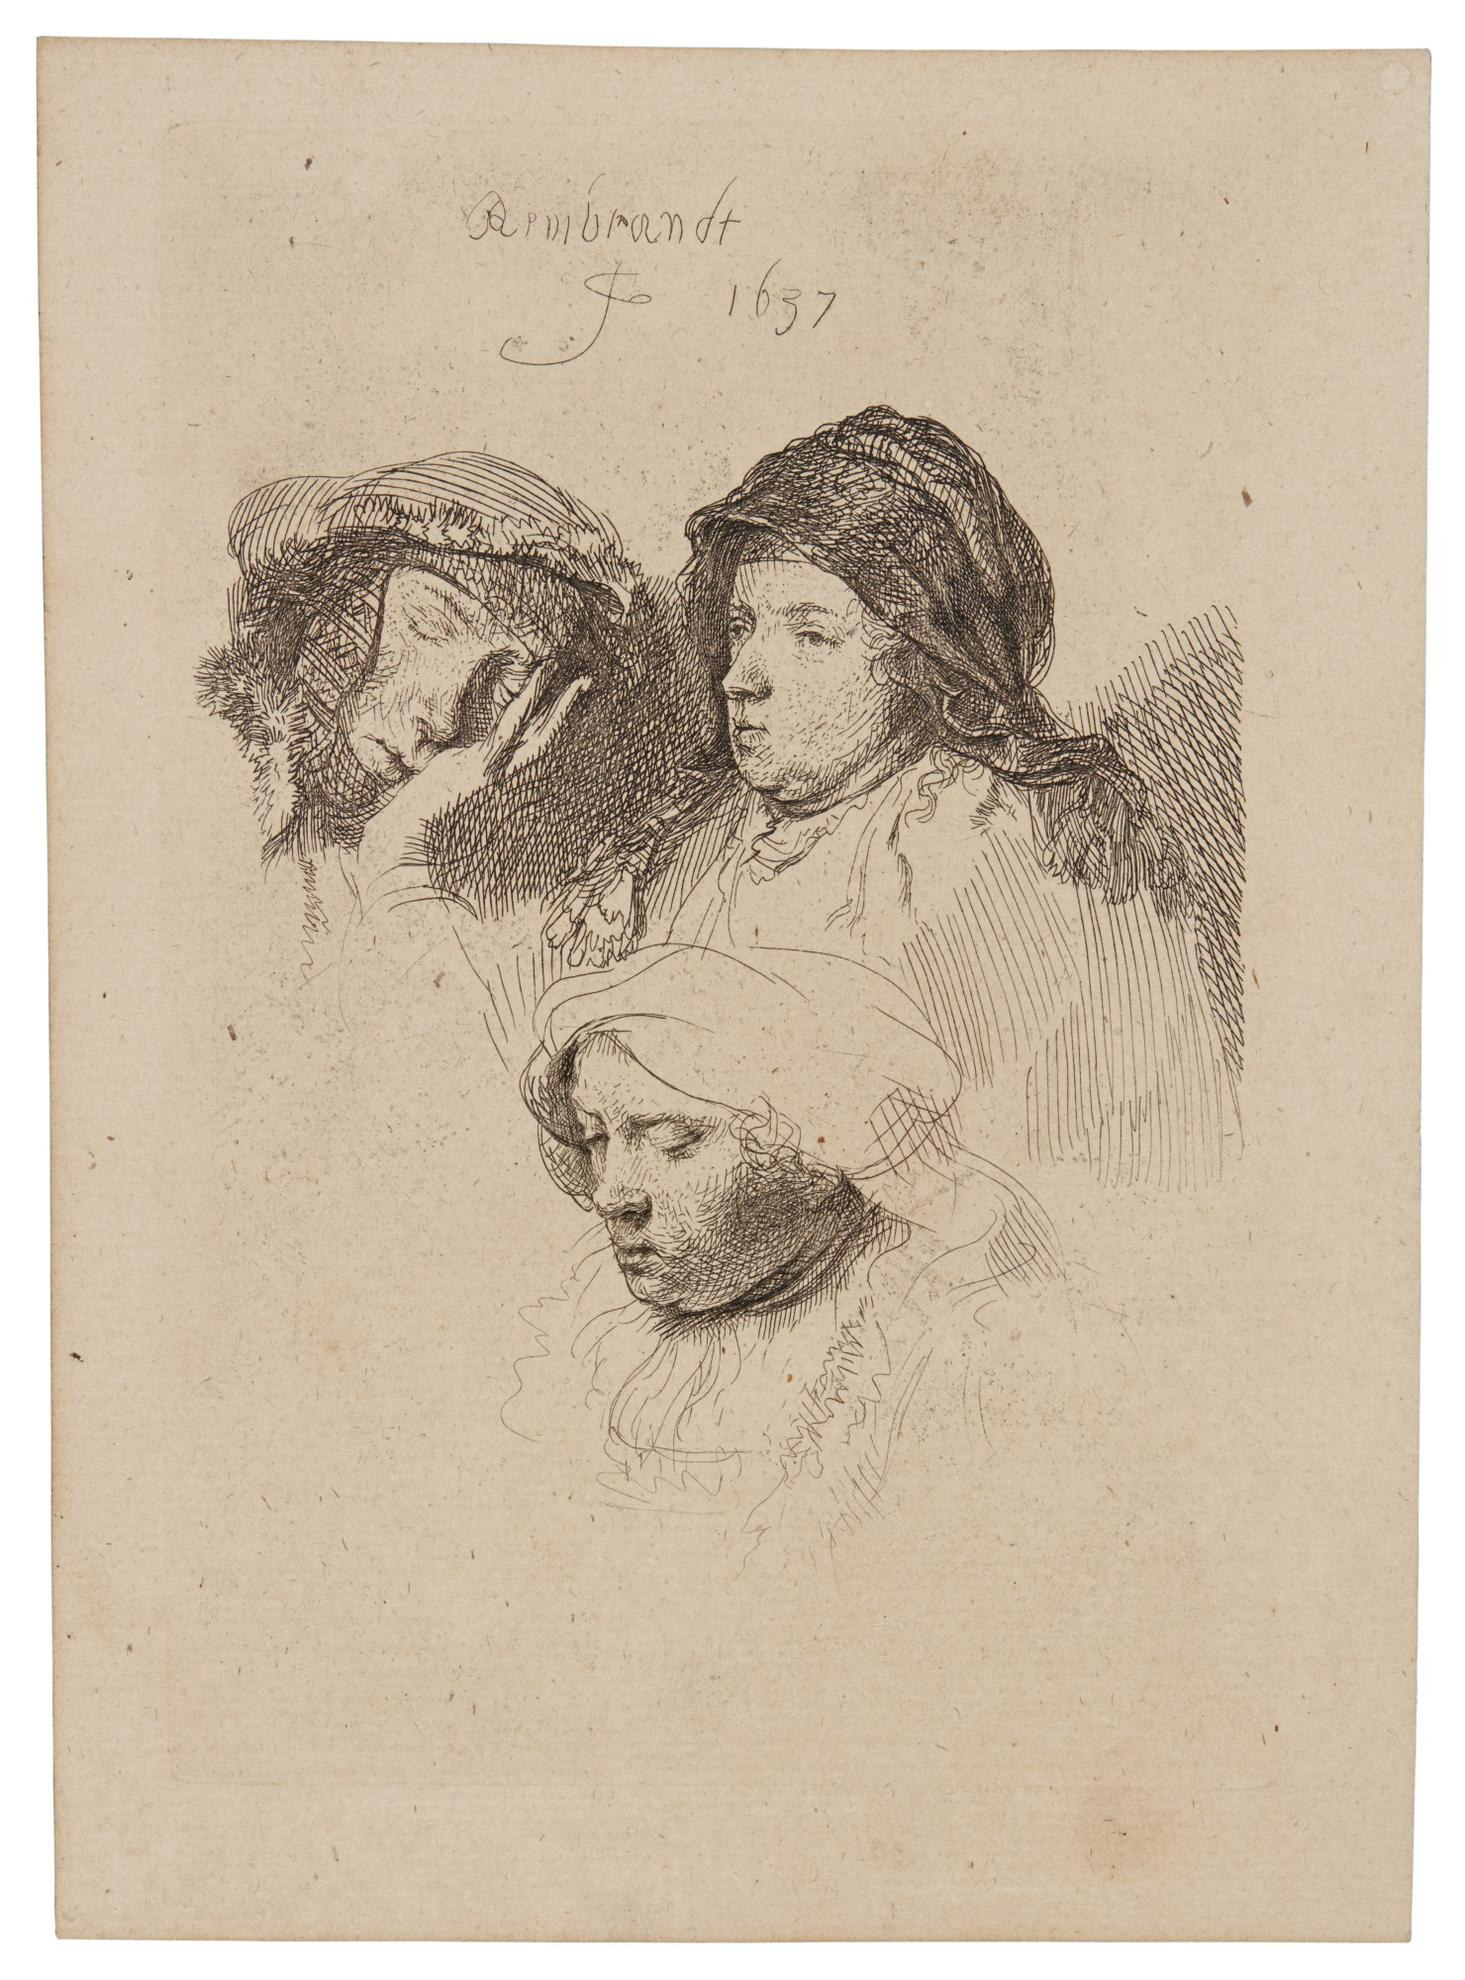 Rembrandt van Rijn-Three Heads Of A Woman: One Asleep (B., Holl. 368; New Holl. 161; H. 152); Painter ('Krabbetje') (New Holl. 236); The Artist's Mother Seated in an Oriental Headdress: Half Length (New Holl. 86); The Artist's Mother with her hand on her chest (New Holl. 87)-1637